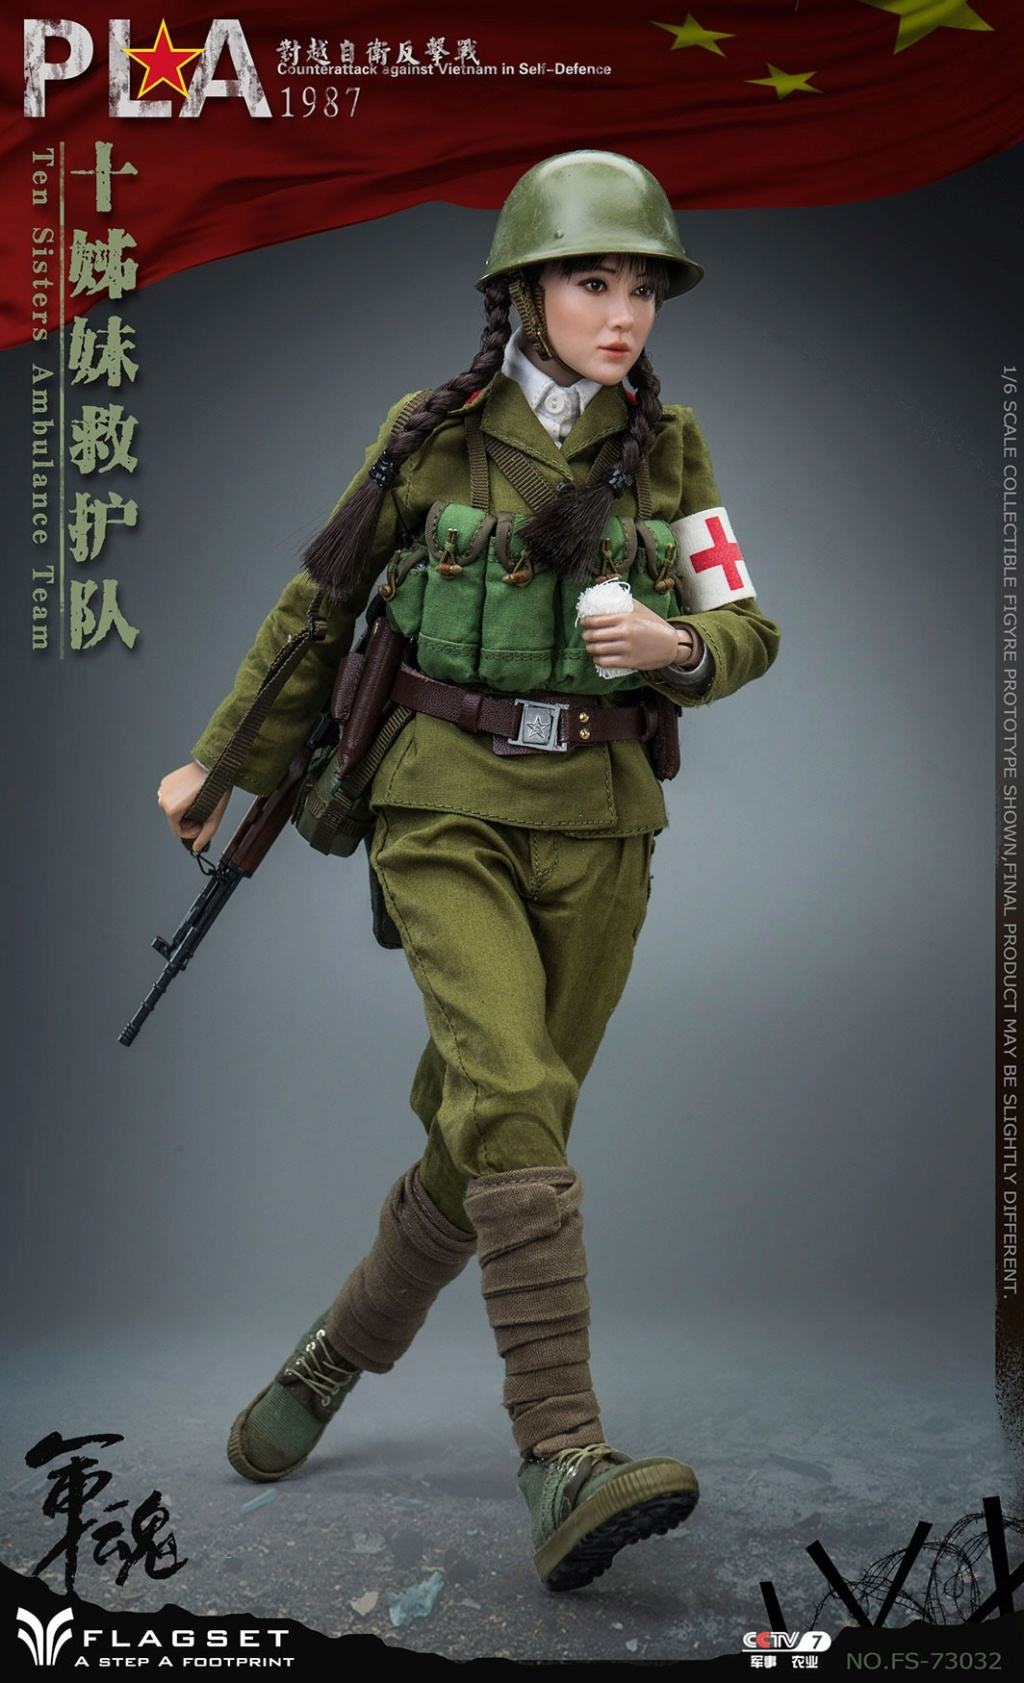 CounterAttack - NEW PRODUCT: Flagset: 1/6 counterattack against Vietnam-female soldiers of the ten sisters rescue team of the Chinese People's Liberation Army (FS73032#) 06540011